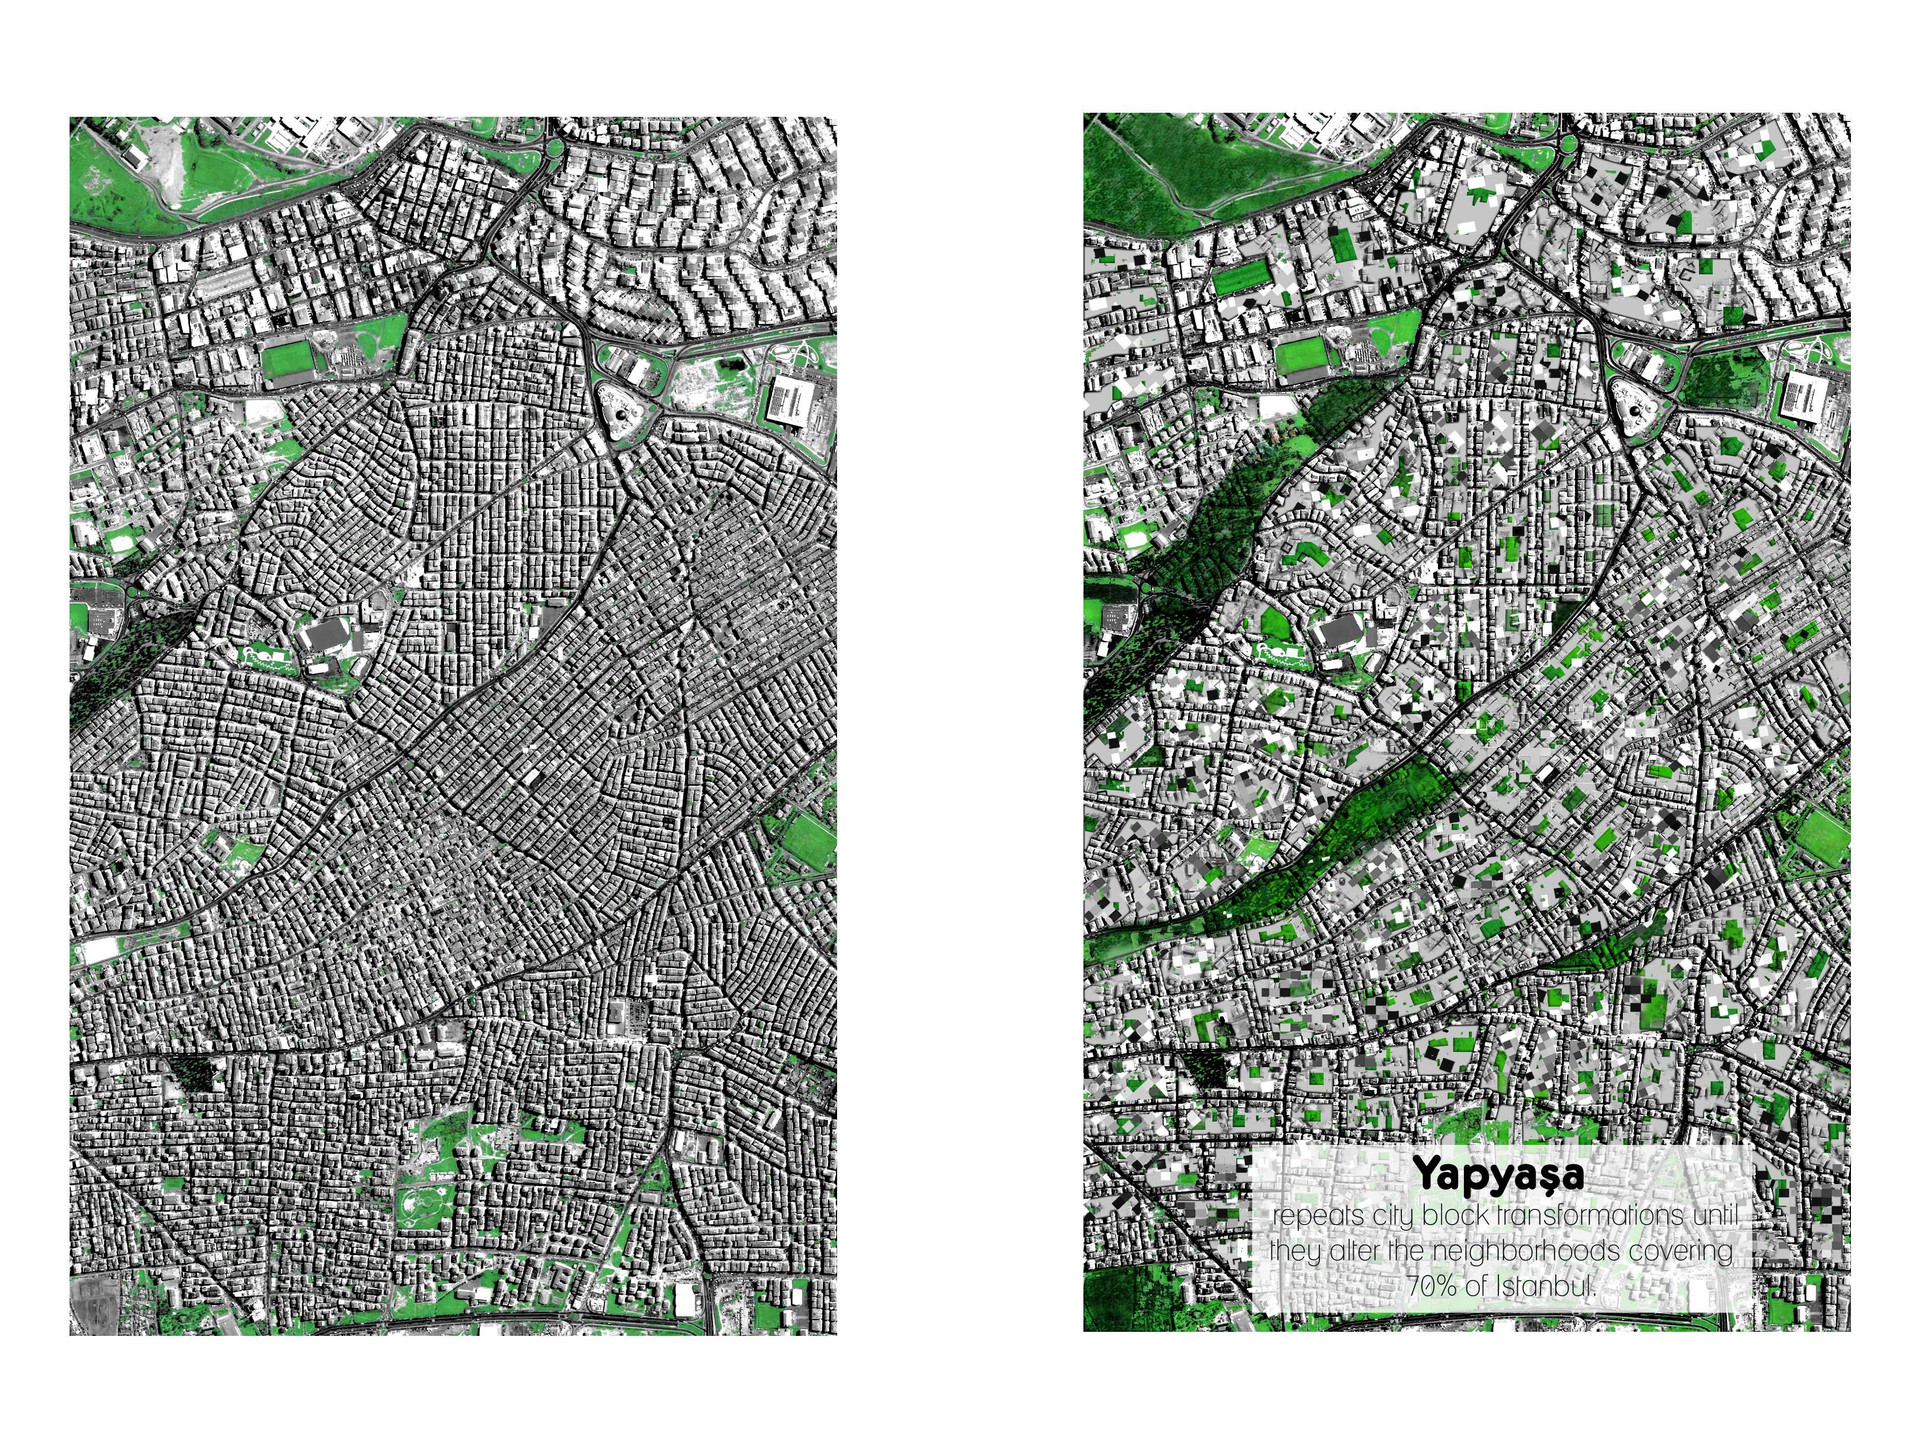 Yapyaşa repeats city block transformations until they alter the neighborhoods covering 70% of Istanbul.